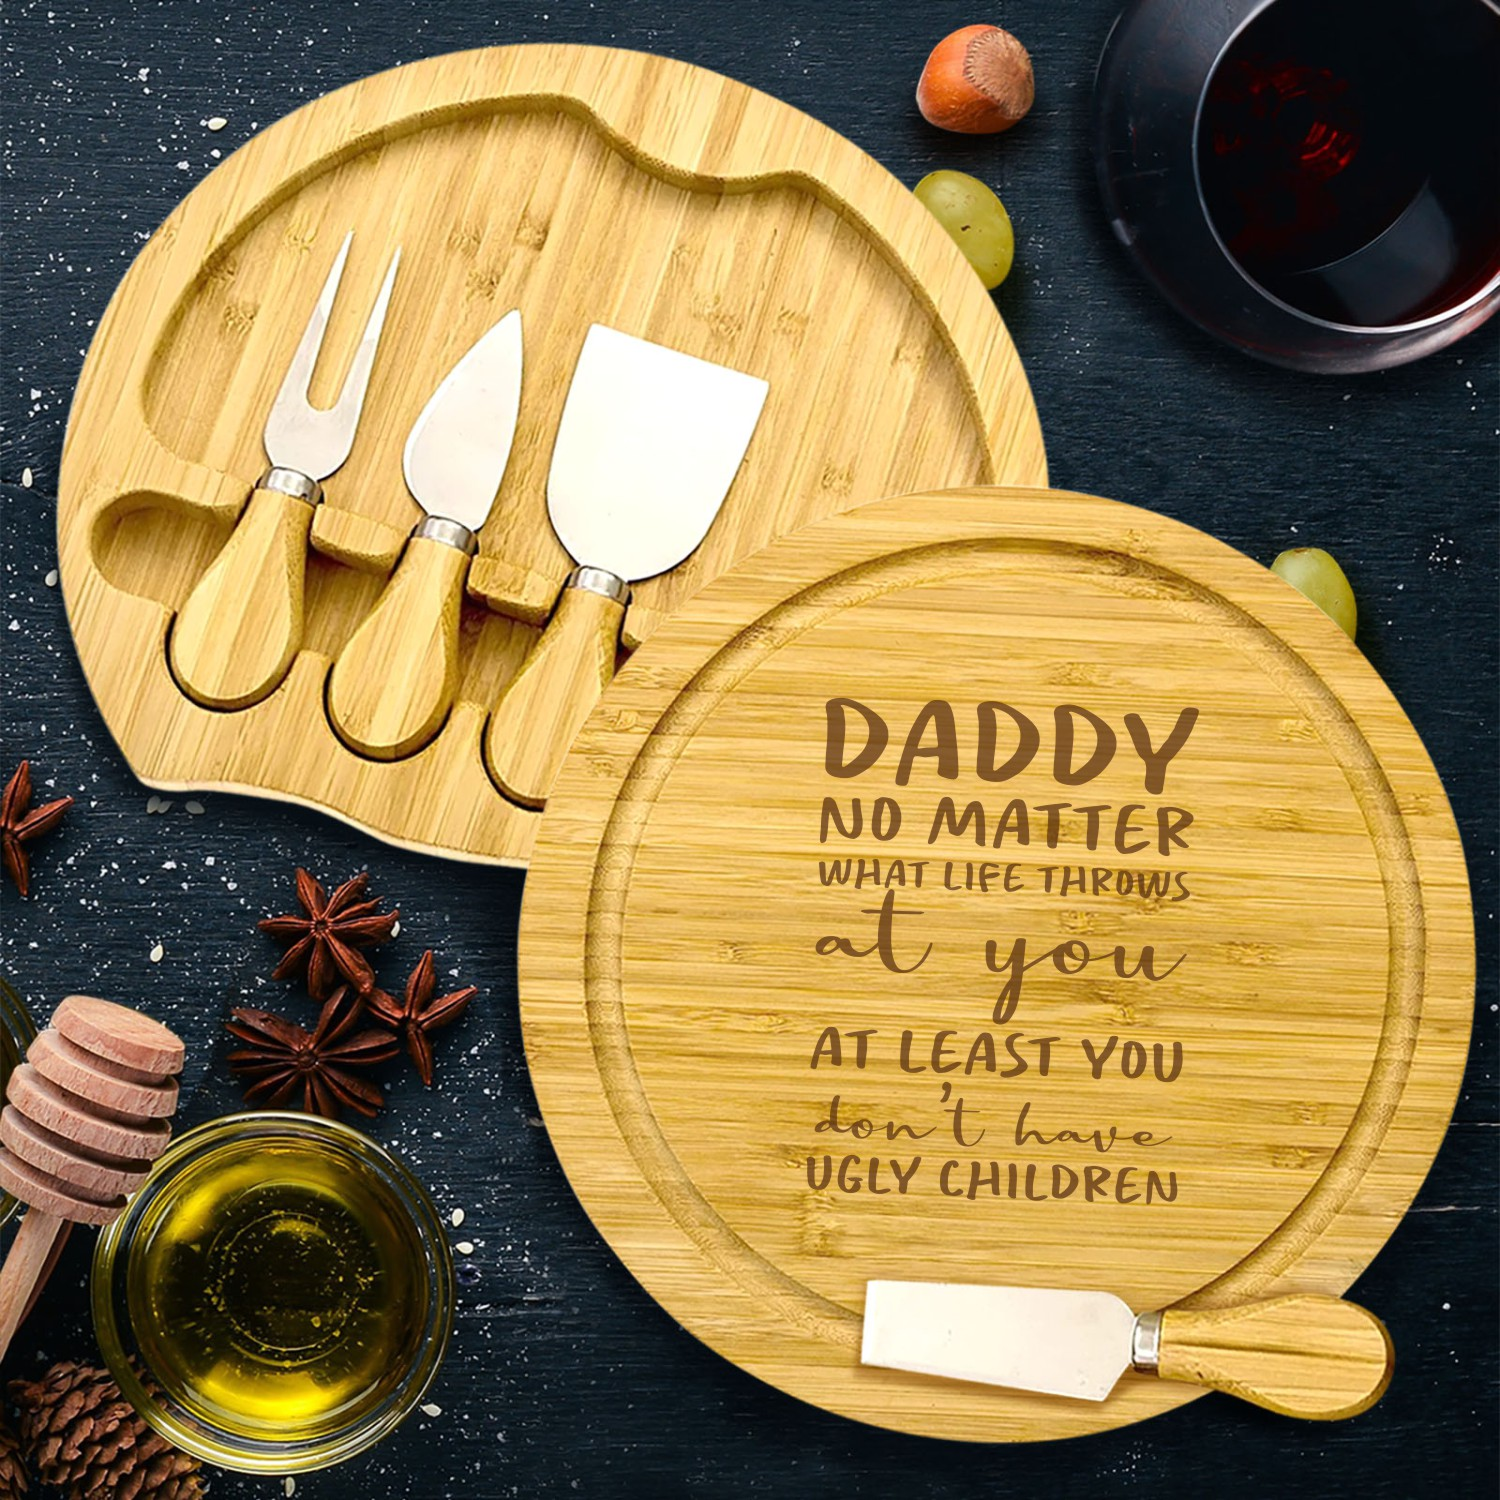 Ugly Children Engraved Cheese Board Gifts